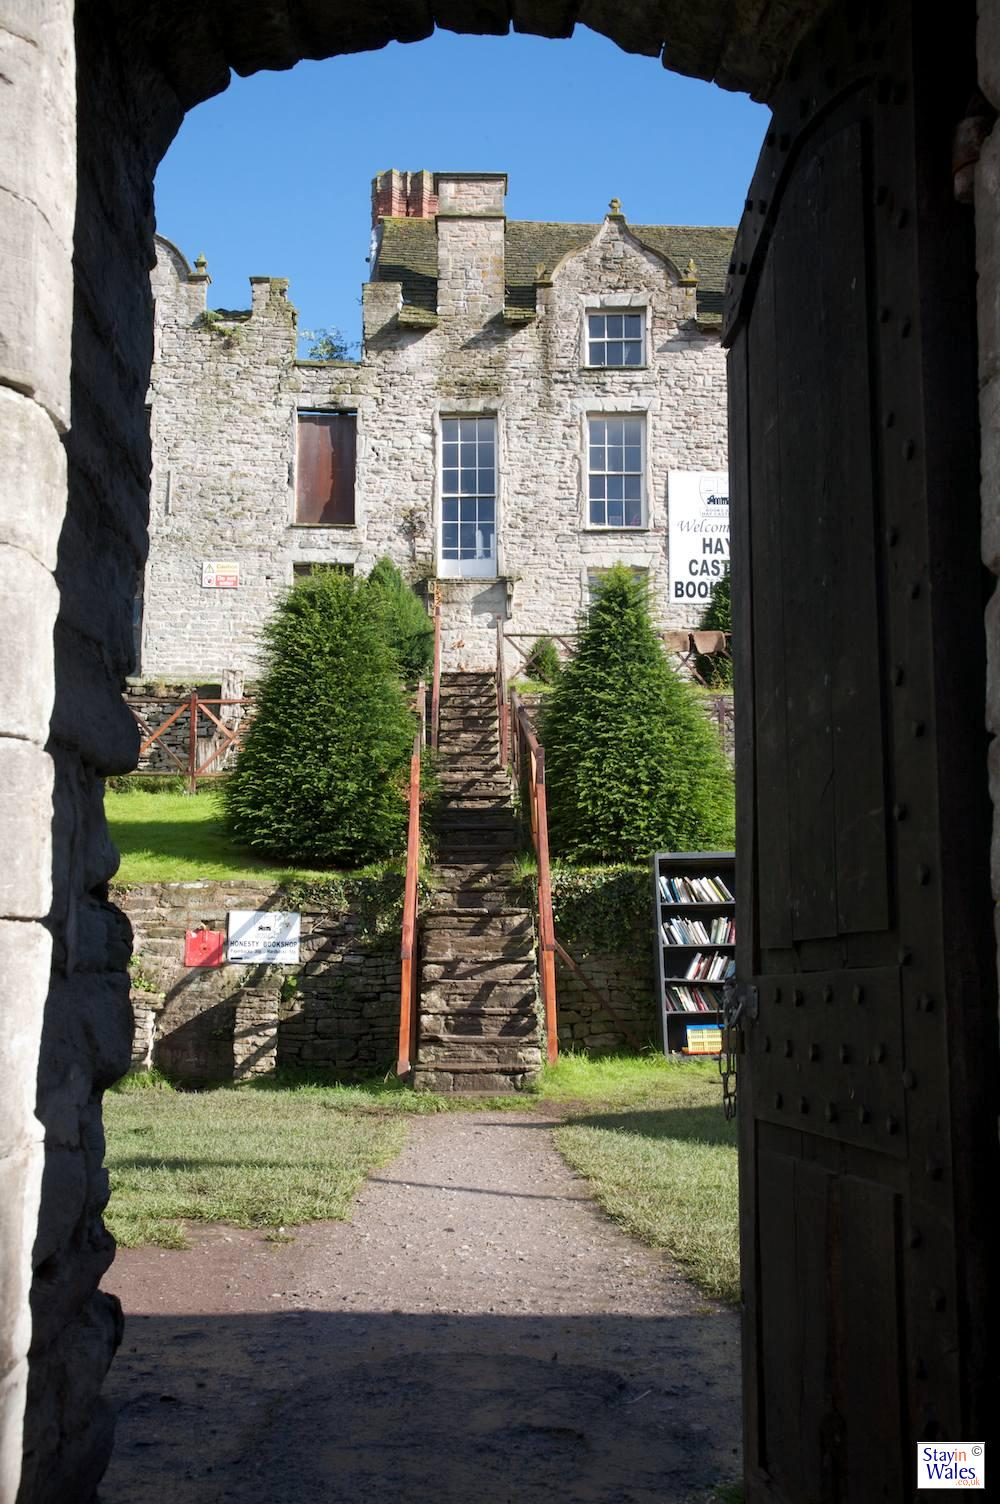 Wall of Books, Hay Castle